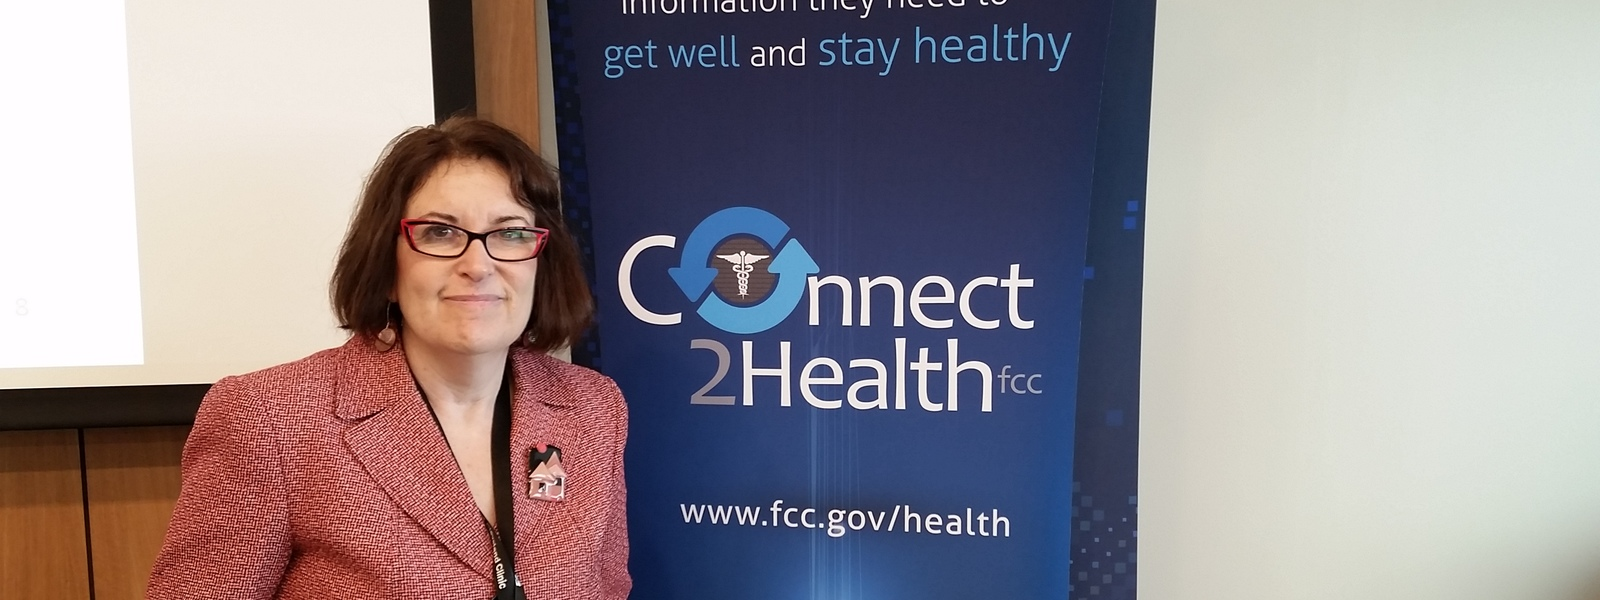 The FCC Learns About HealthDataMatters.org!